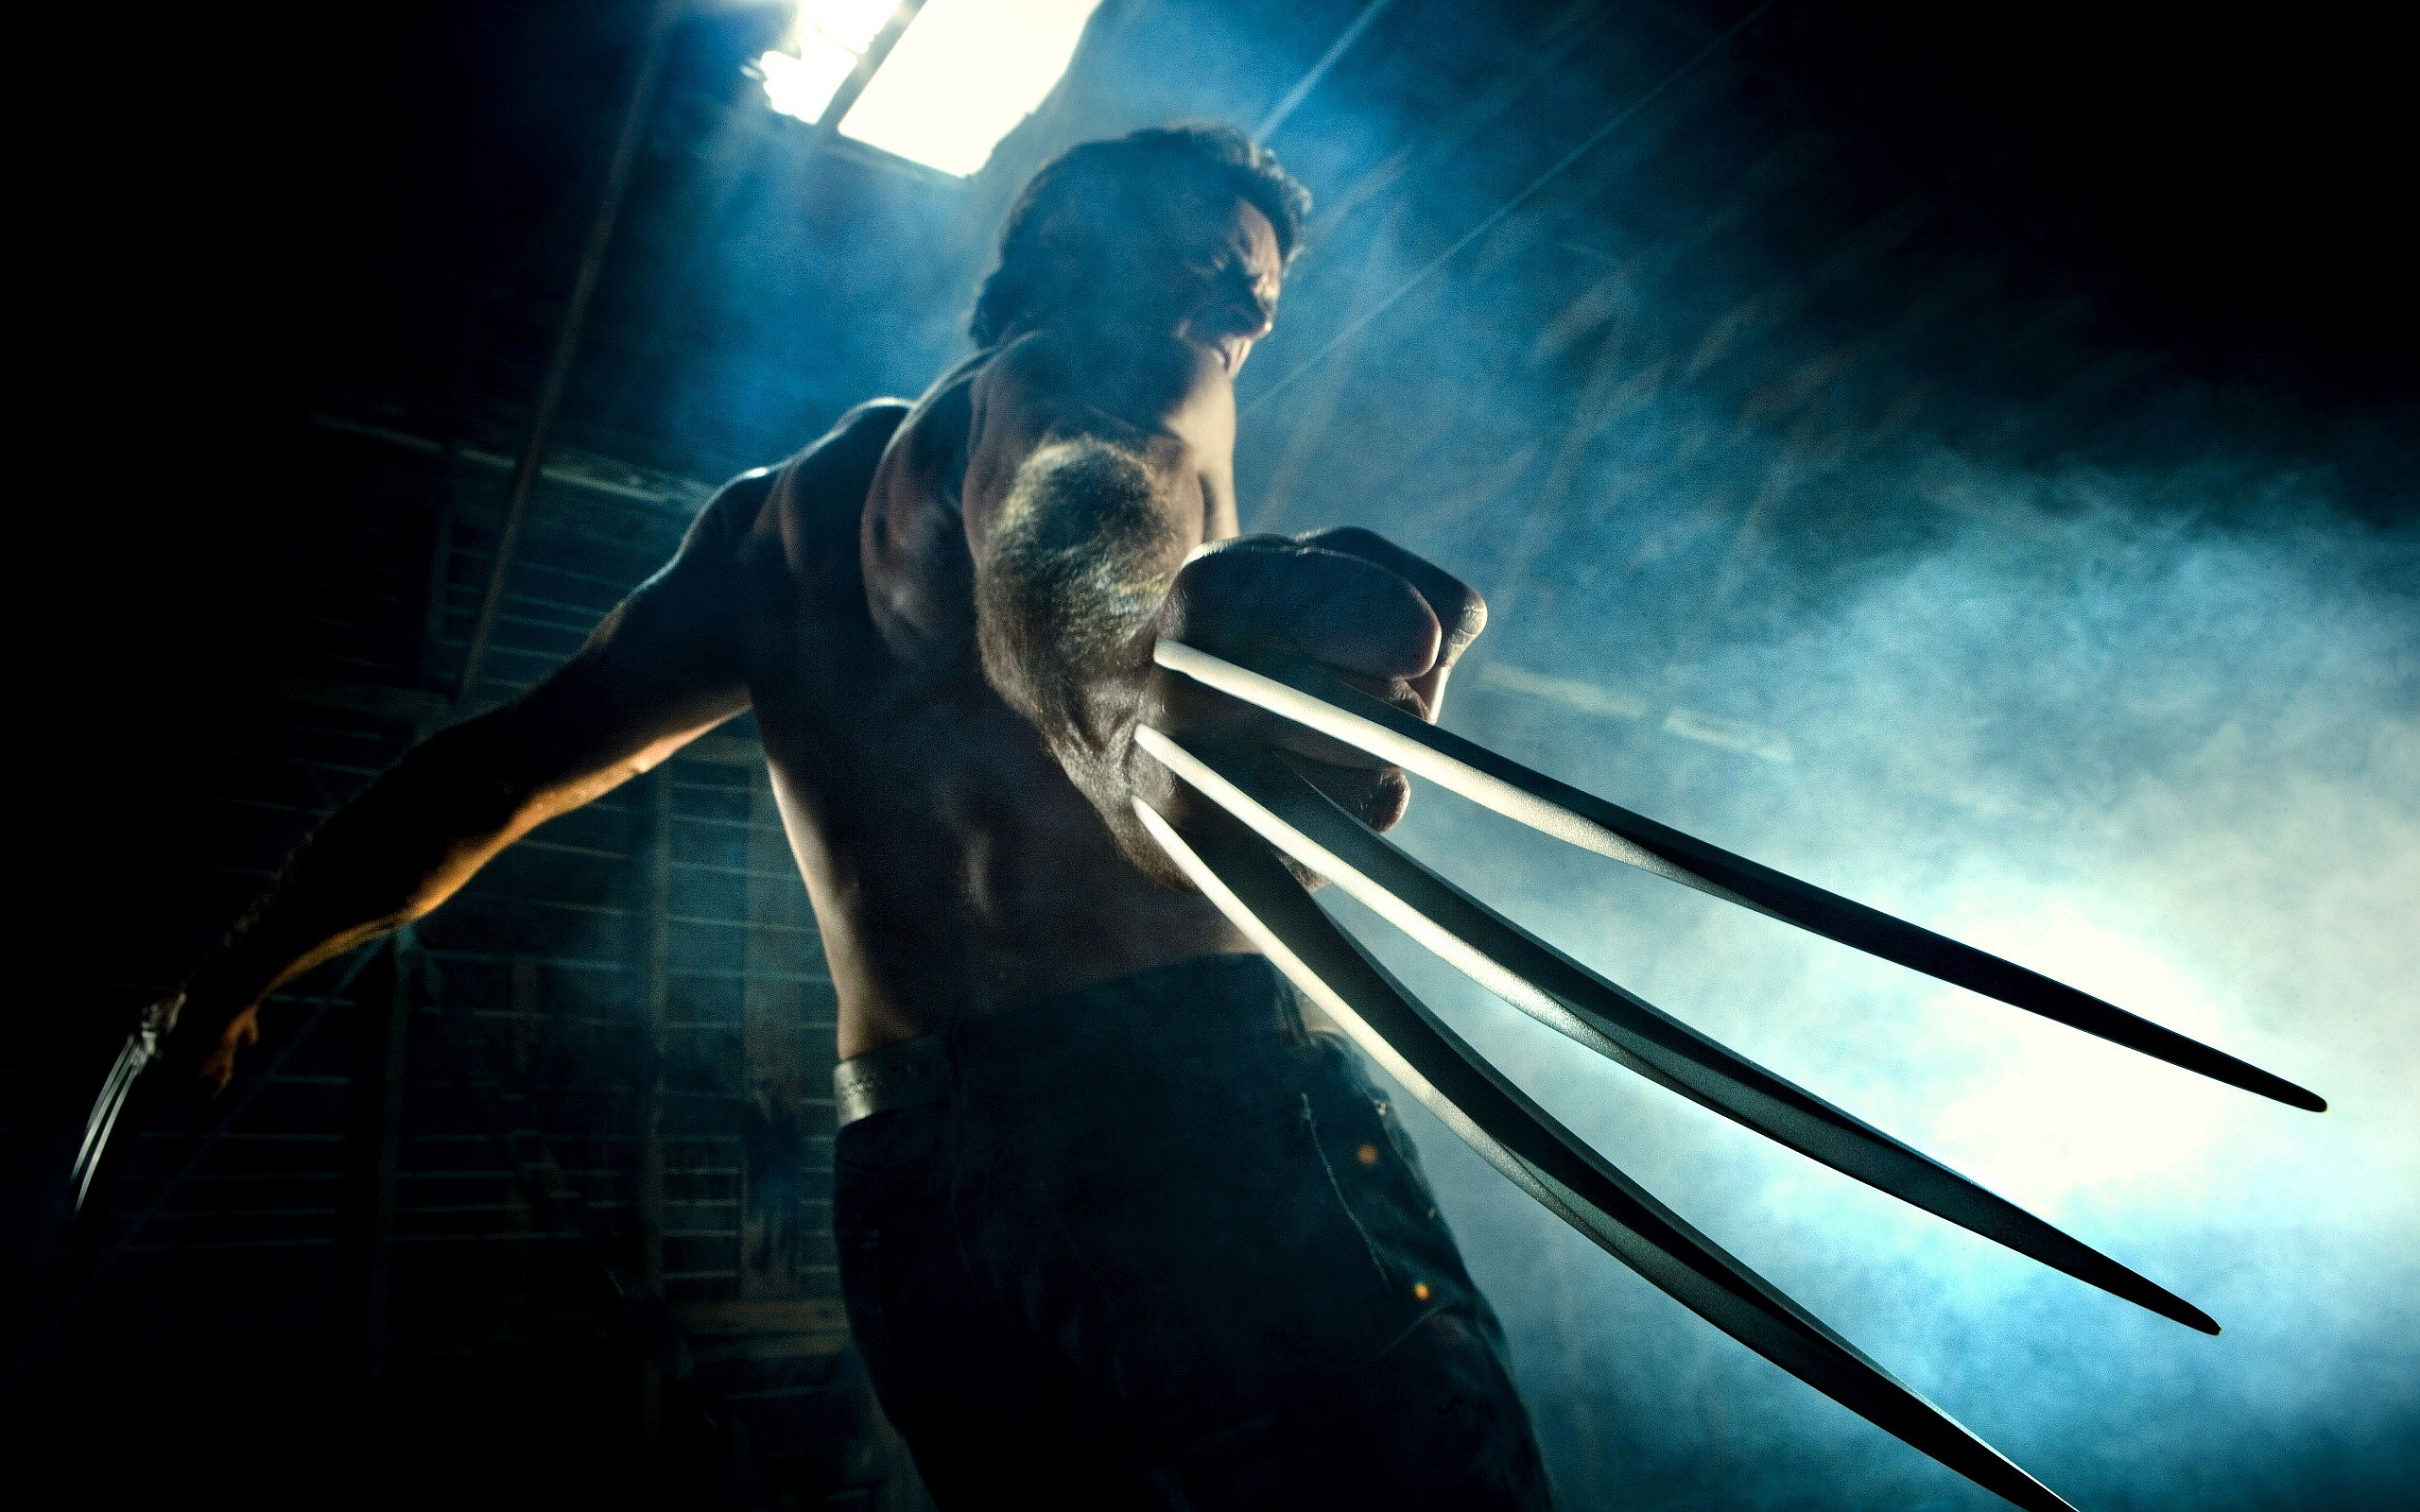 wolverine wallpaper hd full hd pictures